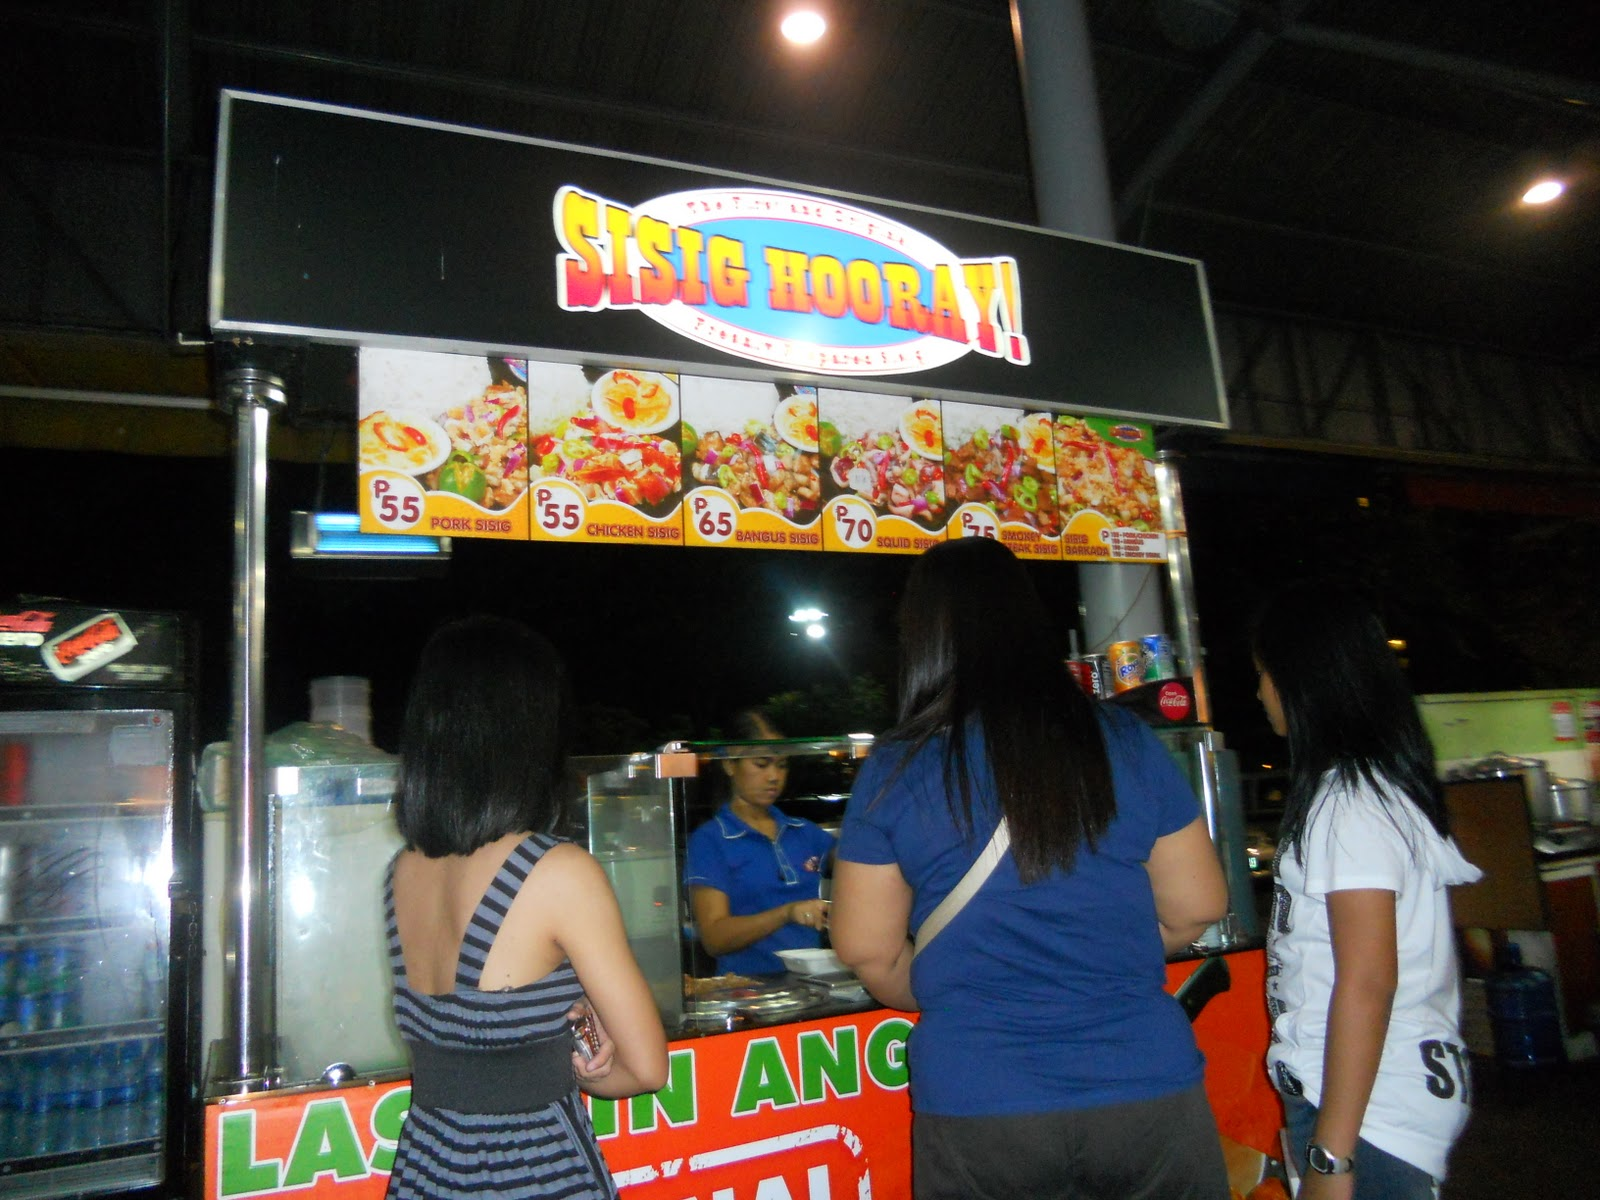 sisig hooray food cart and restaurant franchise. Black Bedroom Furniture Sets. Home Design Ideas